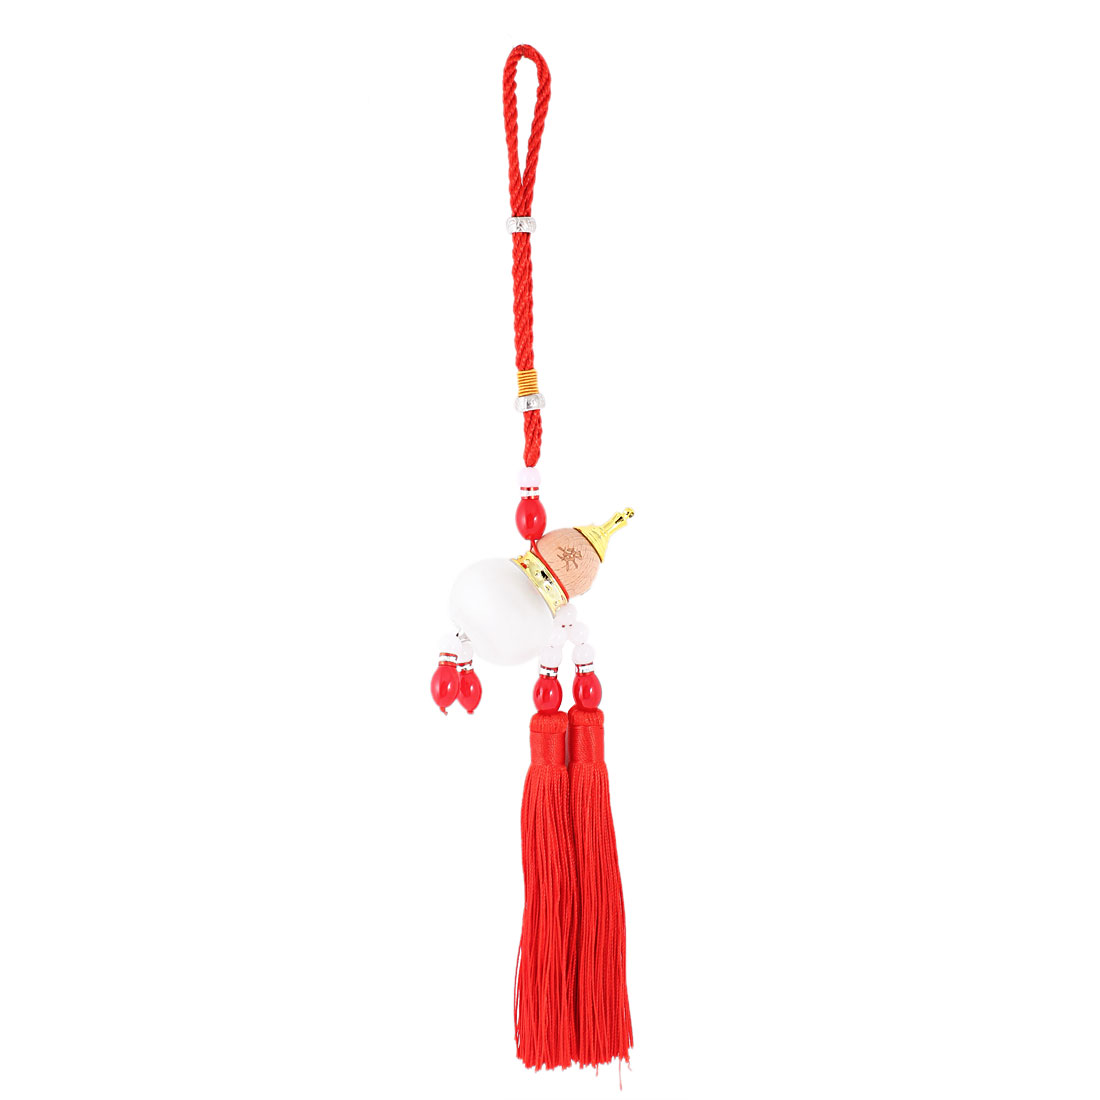 Beads Decor Plastic Calabash Shaped Red Pendant Tassel Hanging for Car